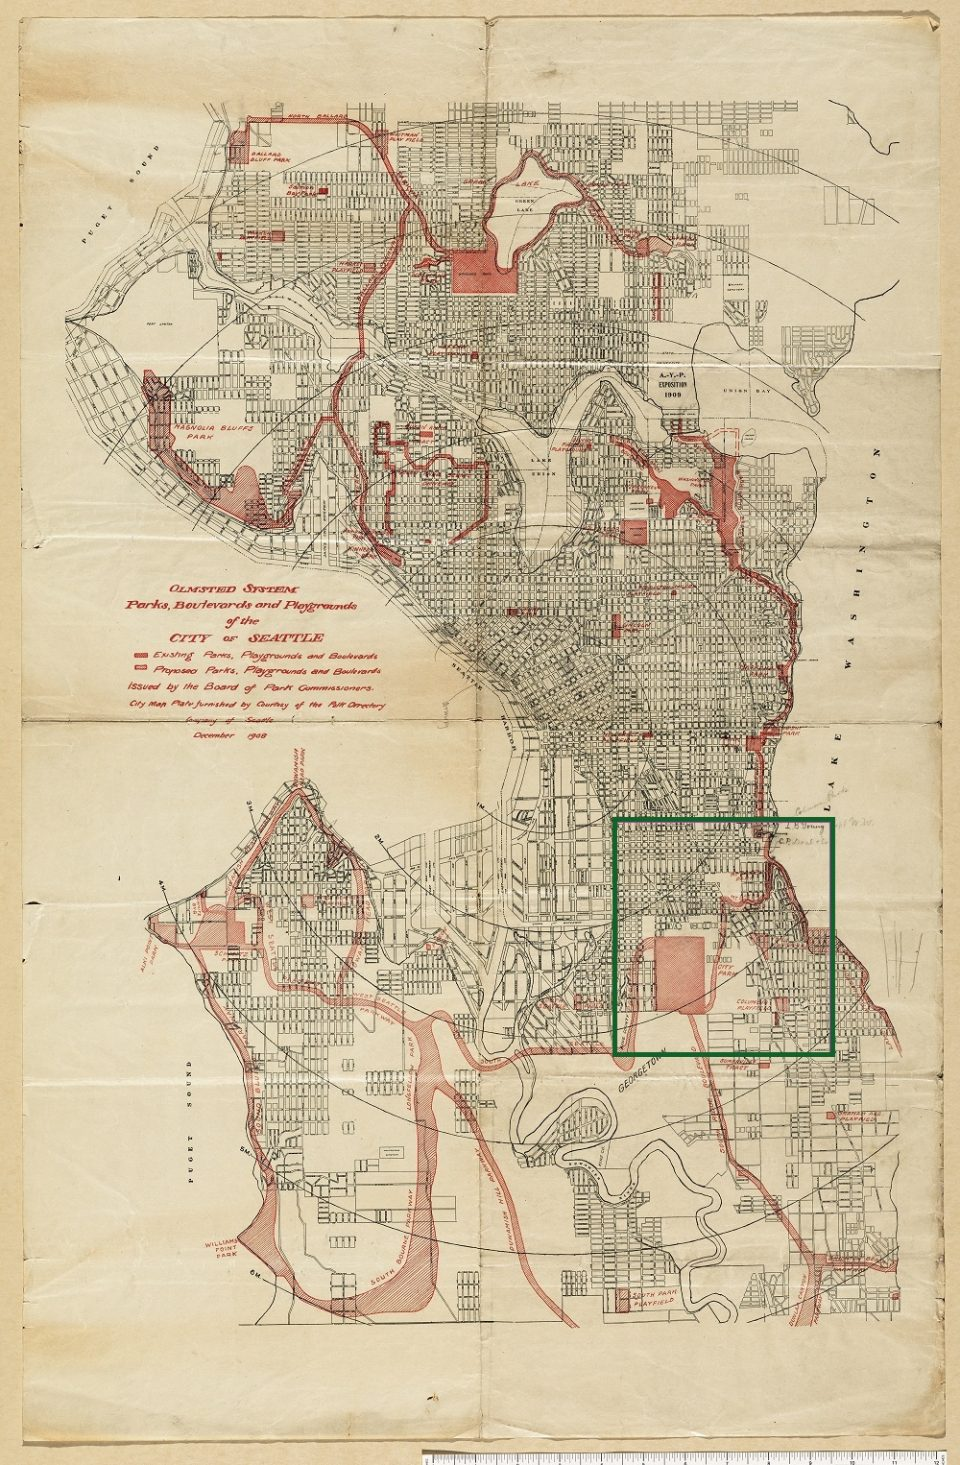 """Yellowed line drawn map of Seattle with sites and routes across the city hatched in red. Map is titled, """"Olmsted System, Parks, Boulevards and Playgrounds of the City of Seattle."""""""